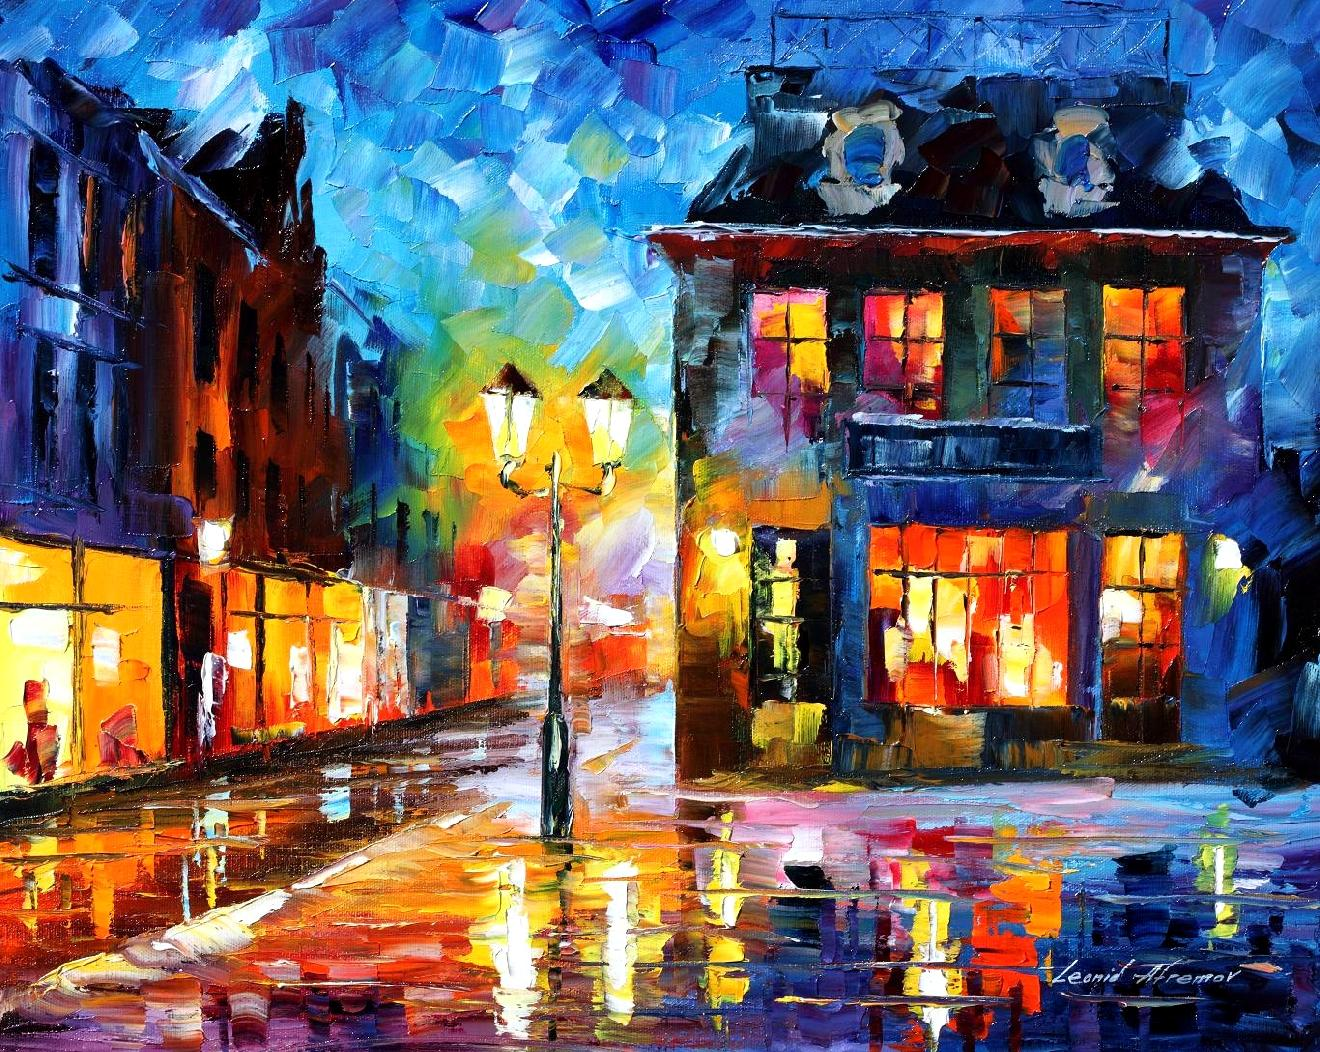 http://afremov.com/product.php?productid=18321